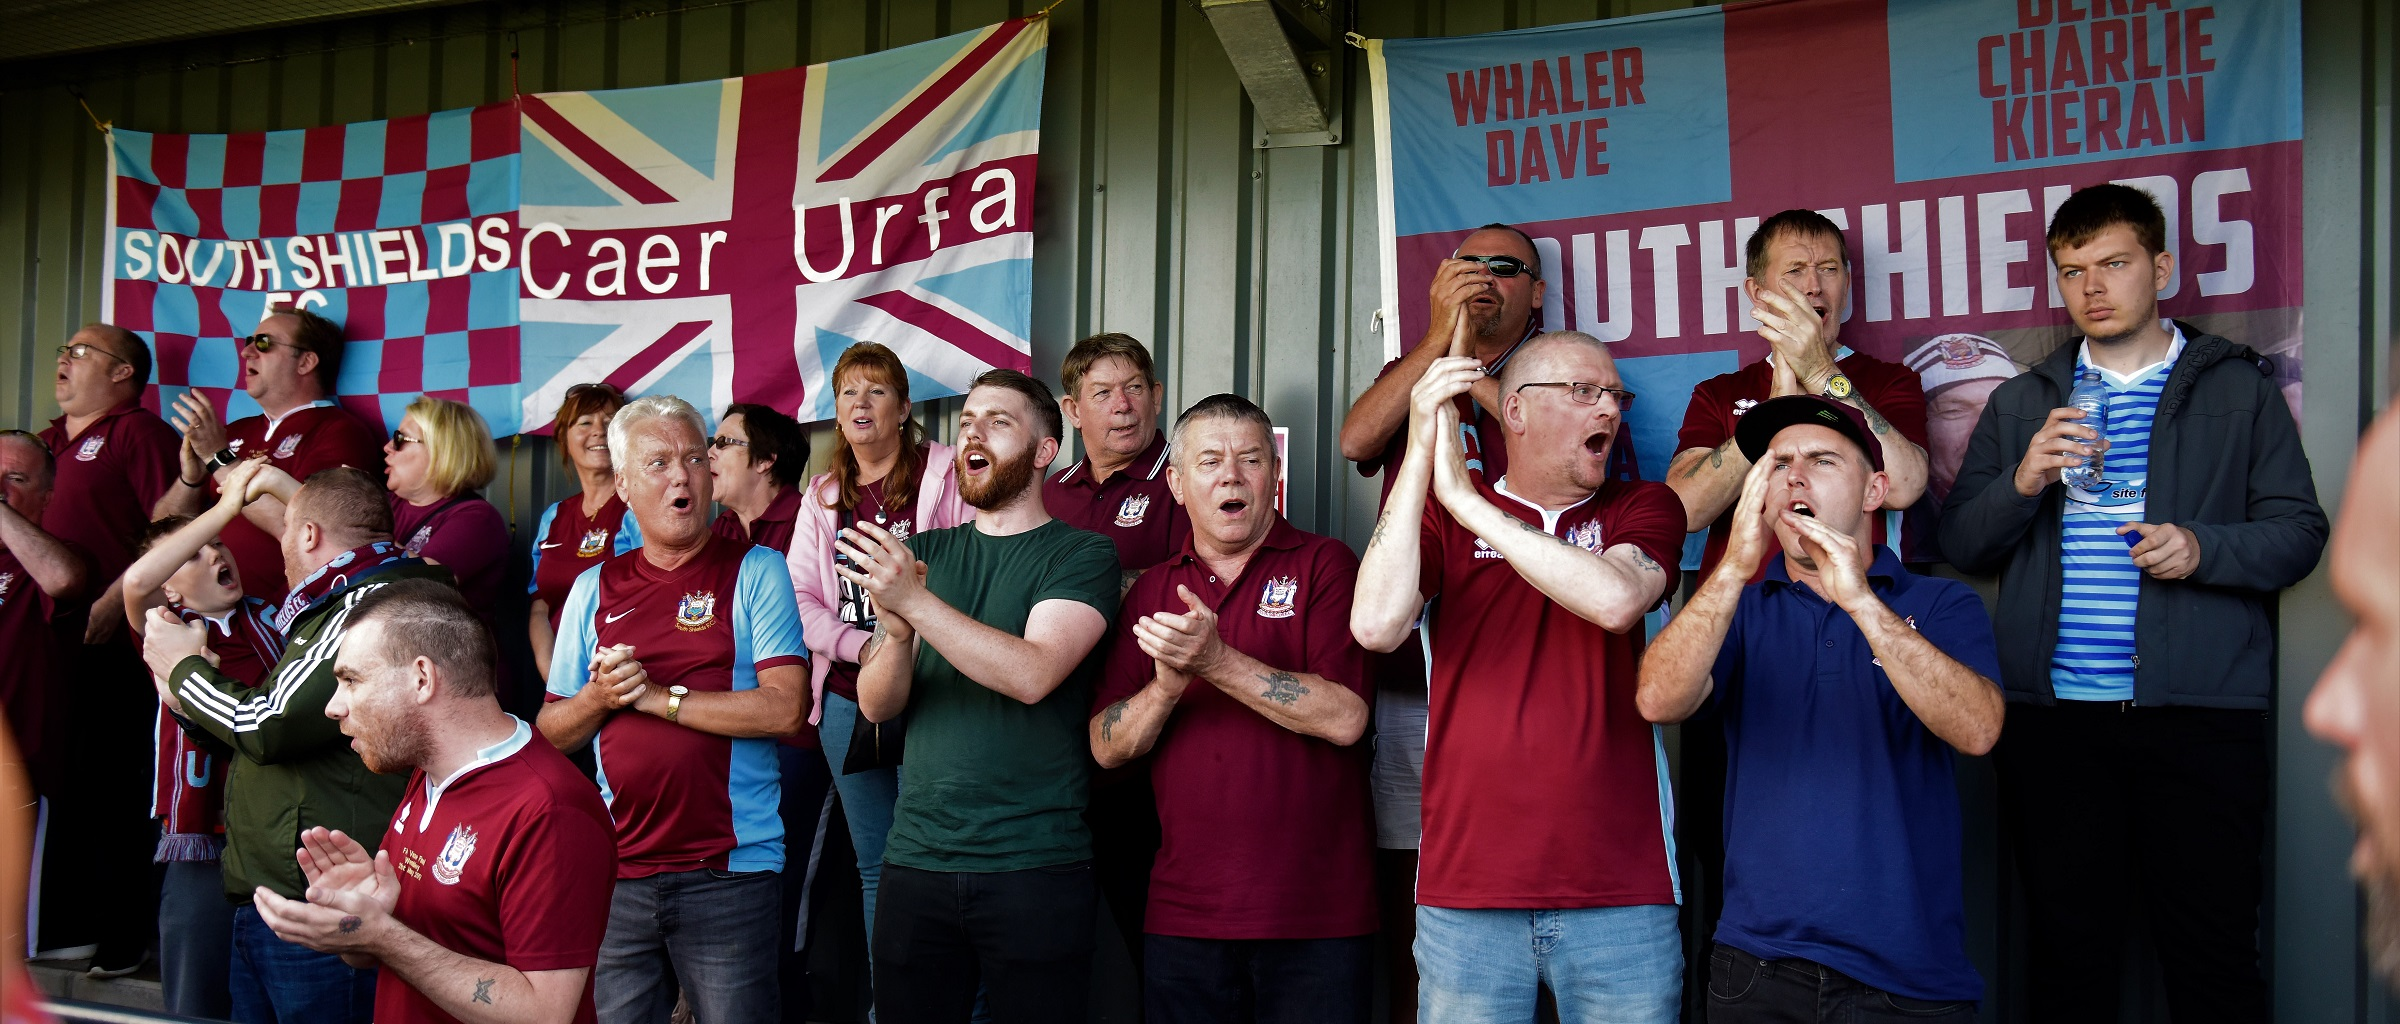 Witton Albion vs South Shields: Segregation at Emirates FA Cup fixture